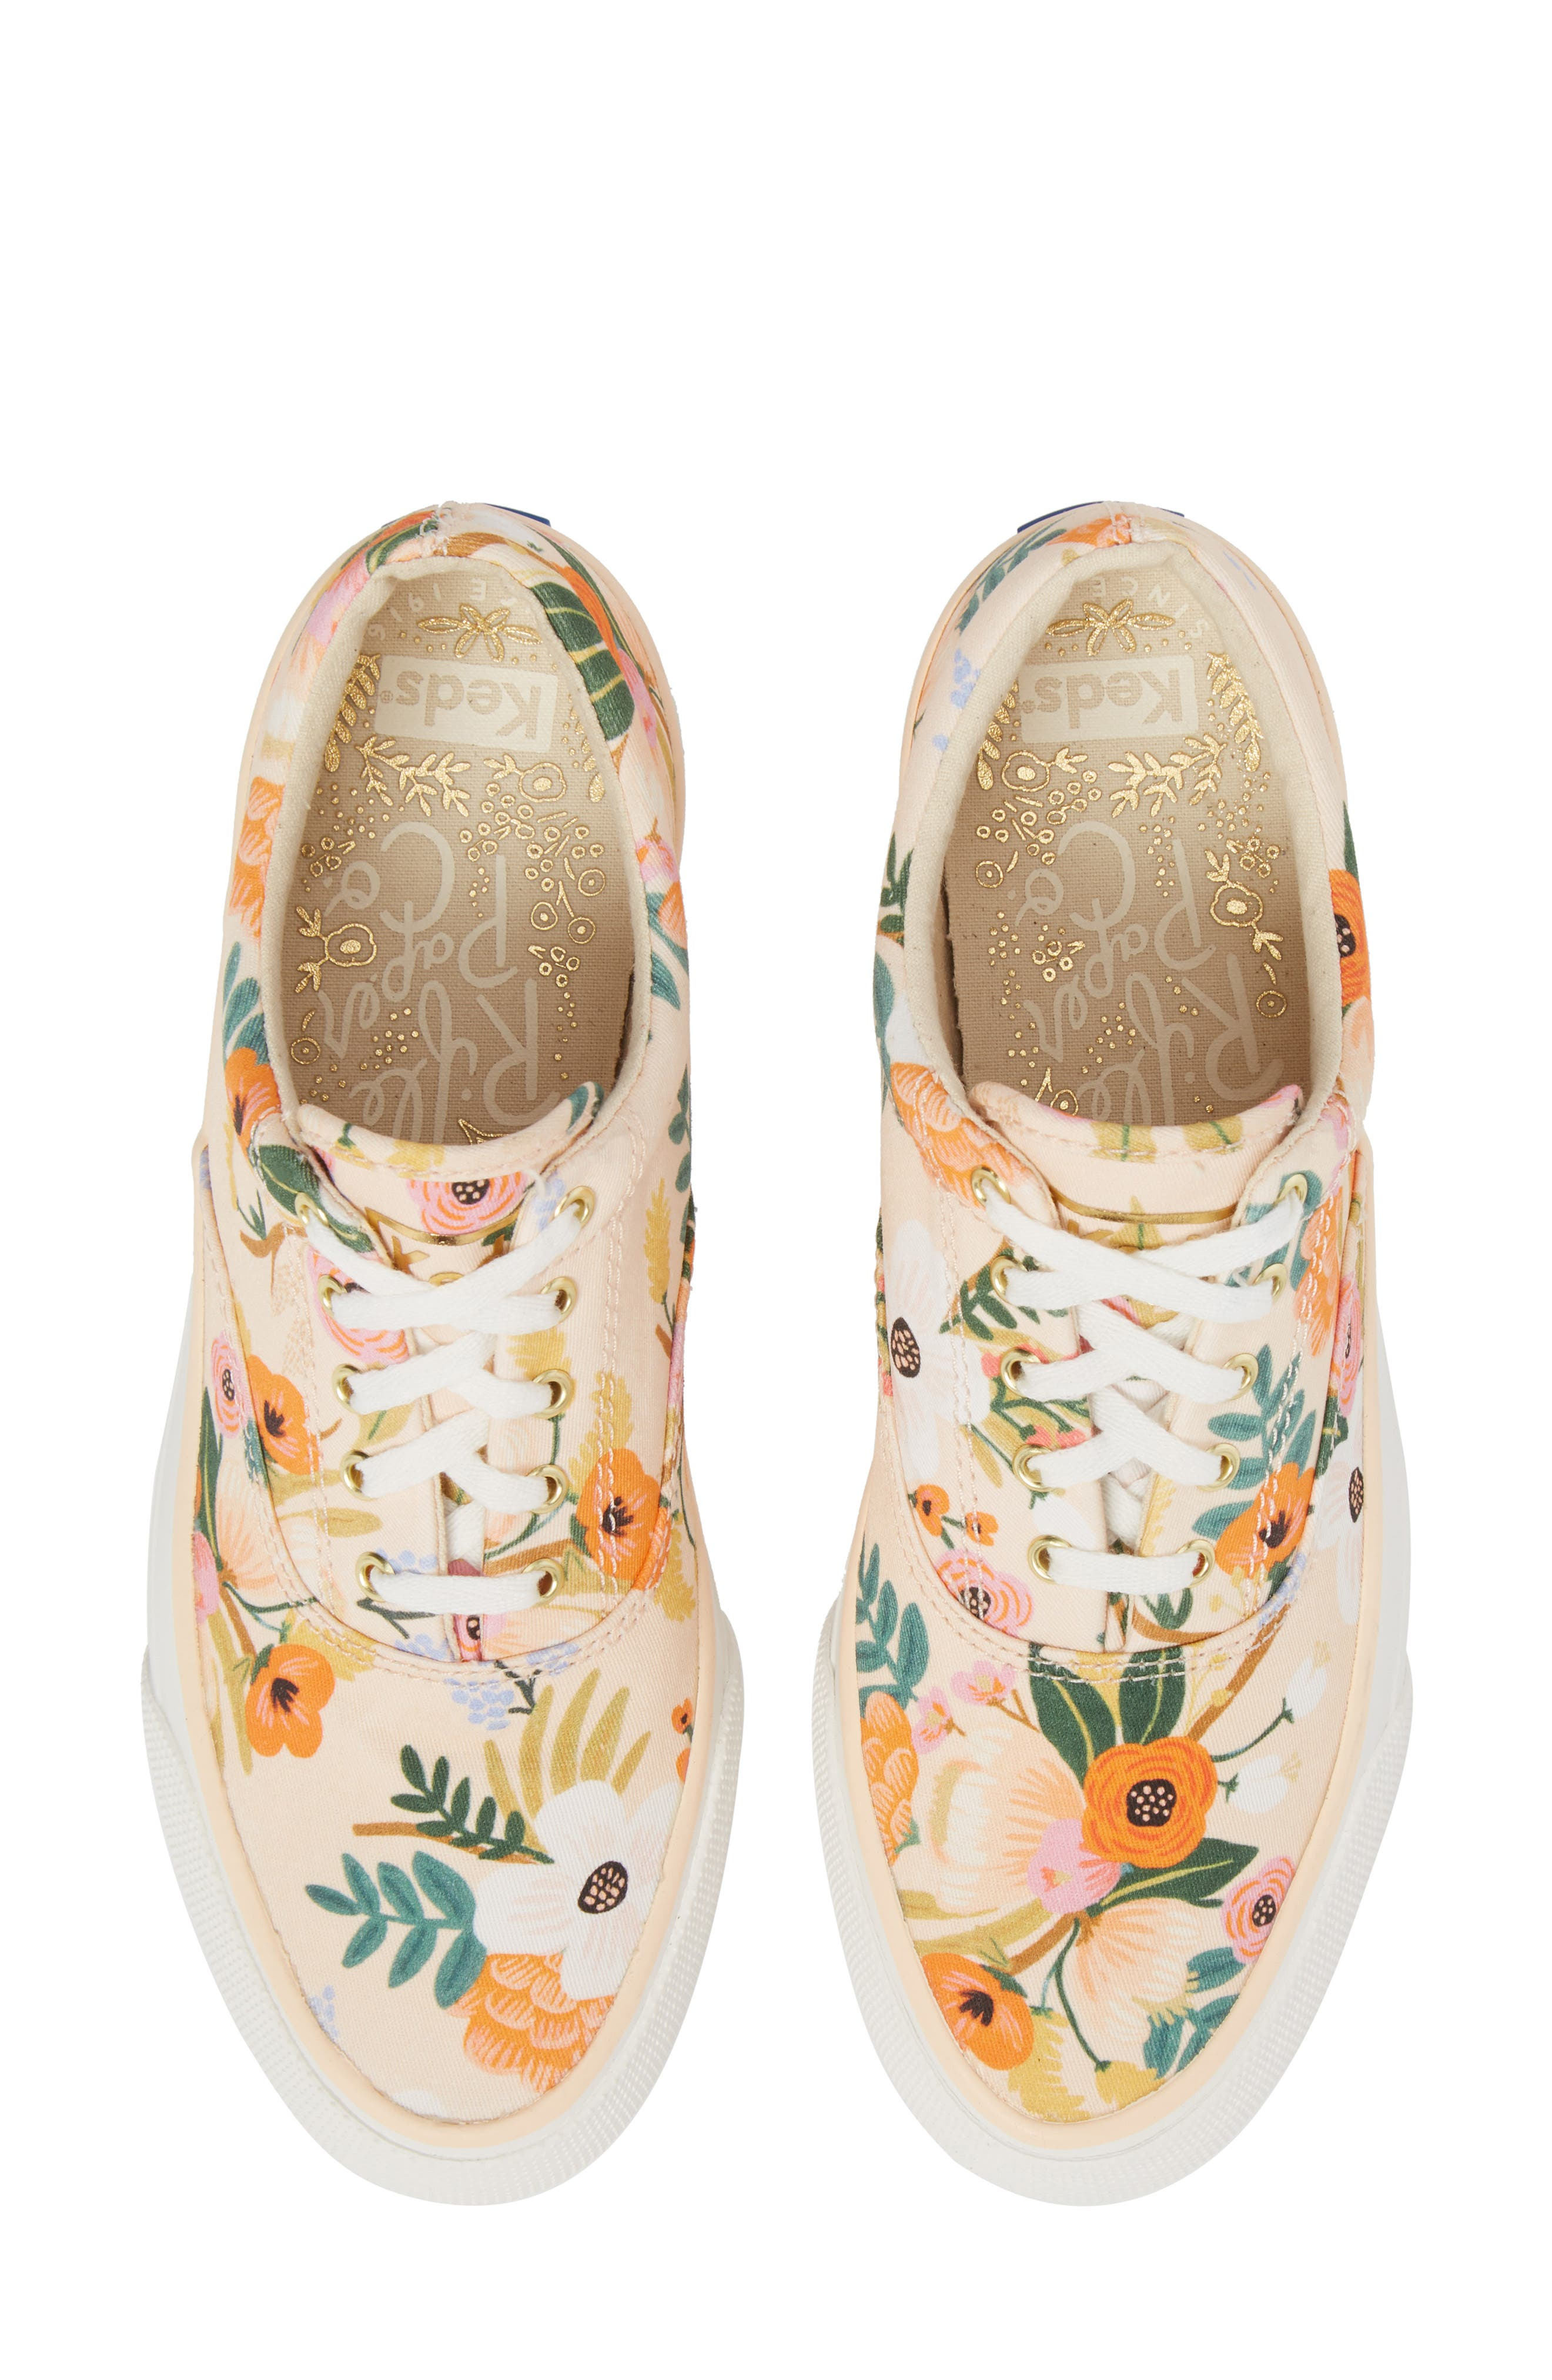 x Rifle Paper Co. Anchor Lively Floral Slip-On Sneaker,                         Main,                         color, Pink